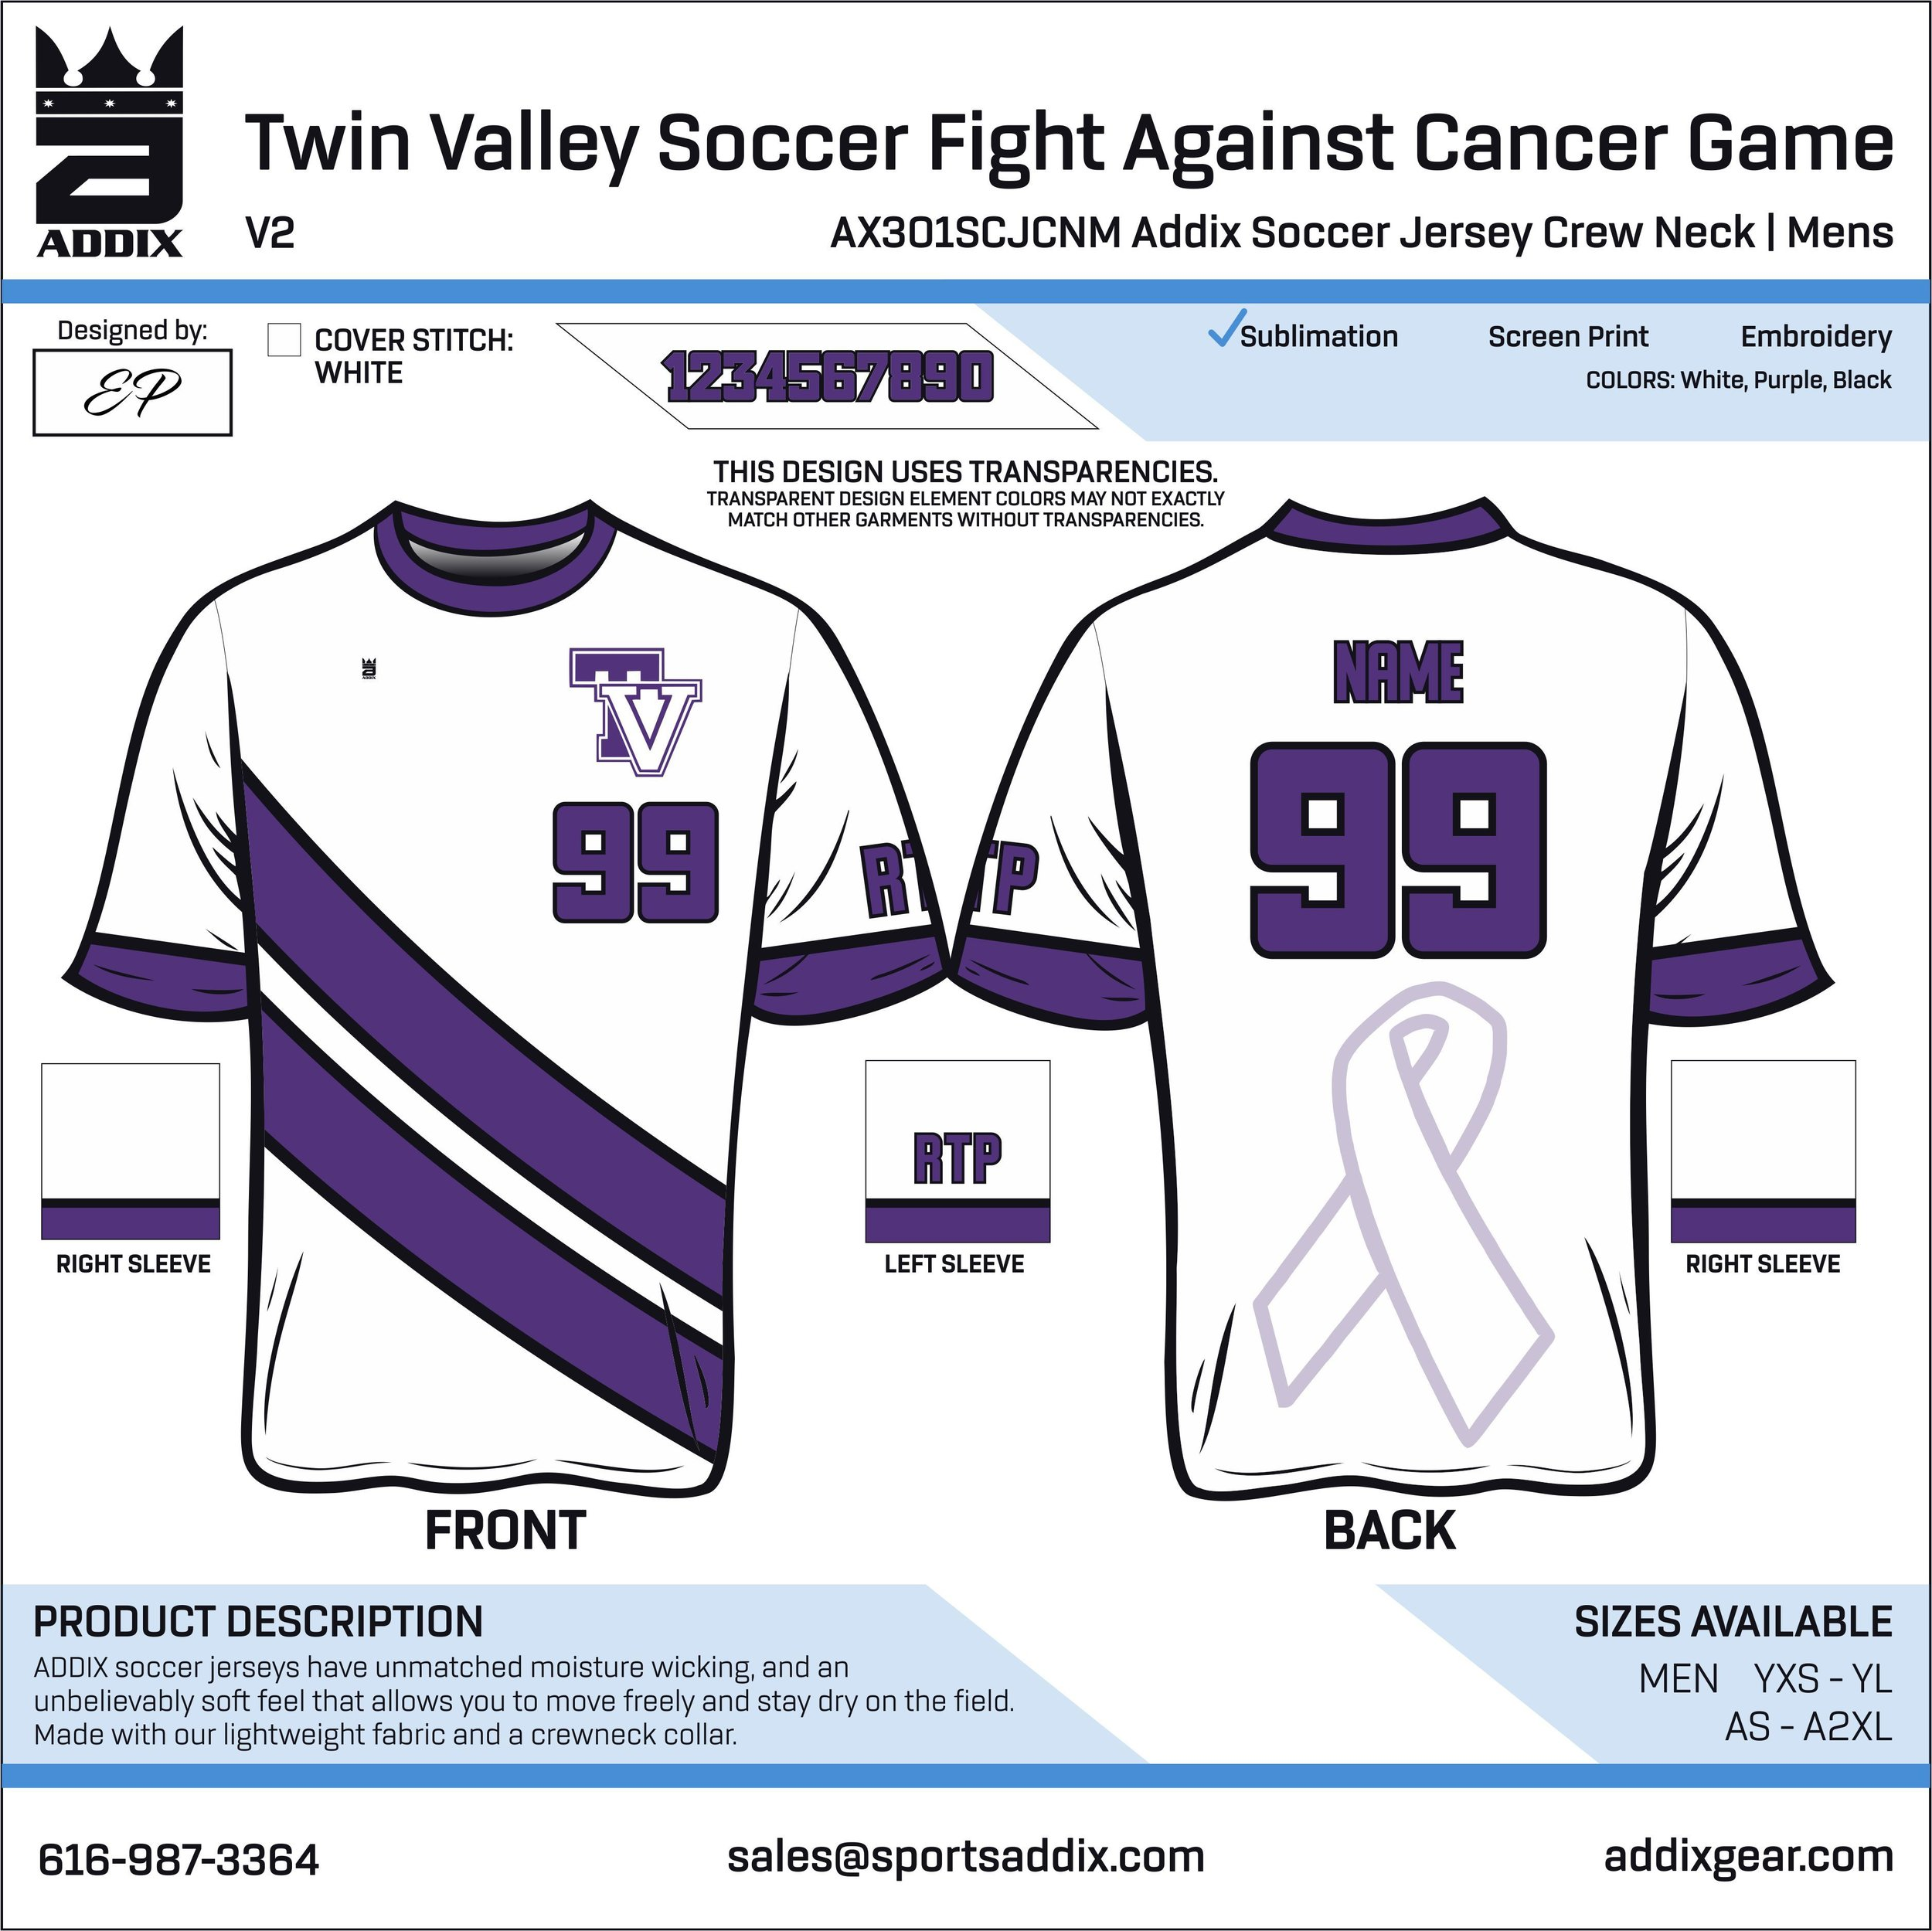 Twin Valley Soccer Fight Against Cancer Game_2019_8-19_EP_soccer jersey crewneck (1).jpg